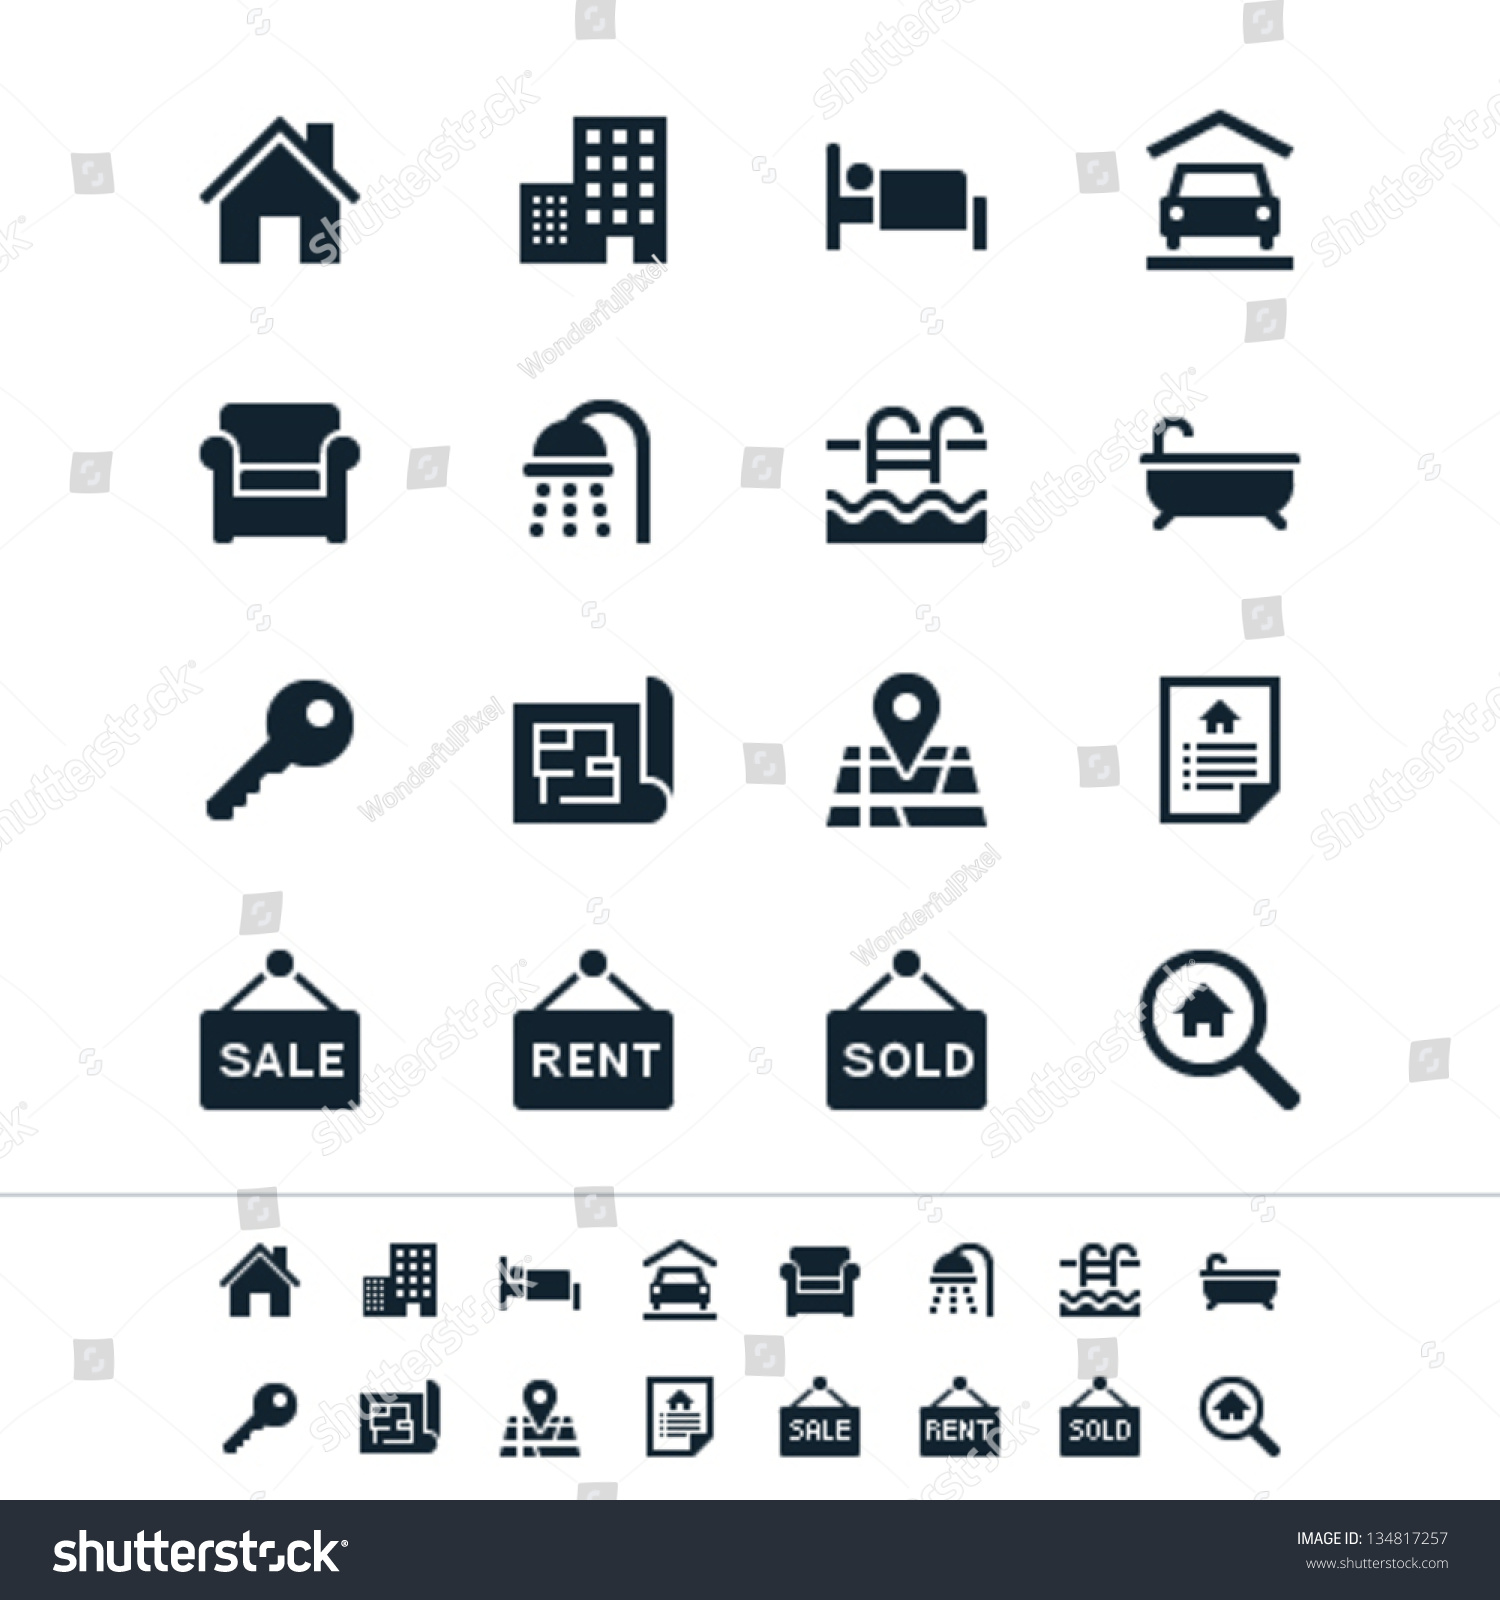 Real Estate Icons 134817257 on Plan View Furniture Clip Art